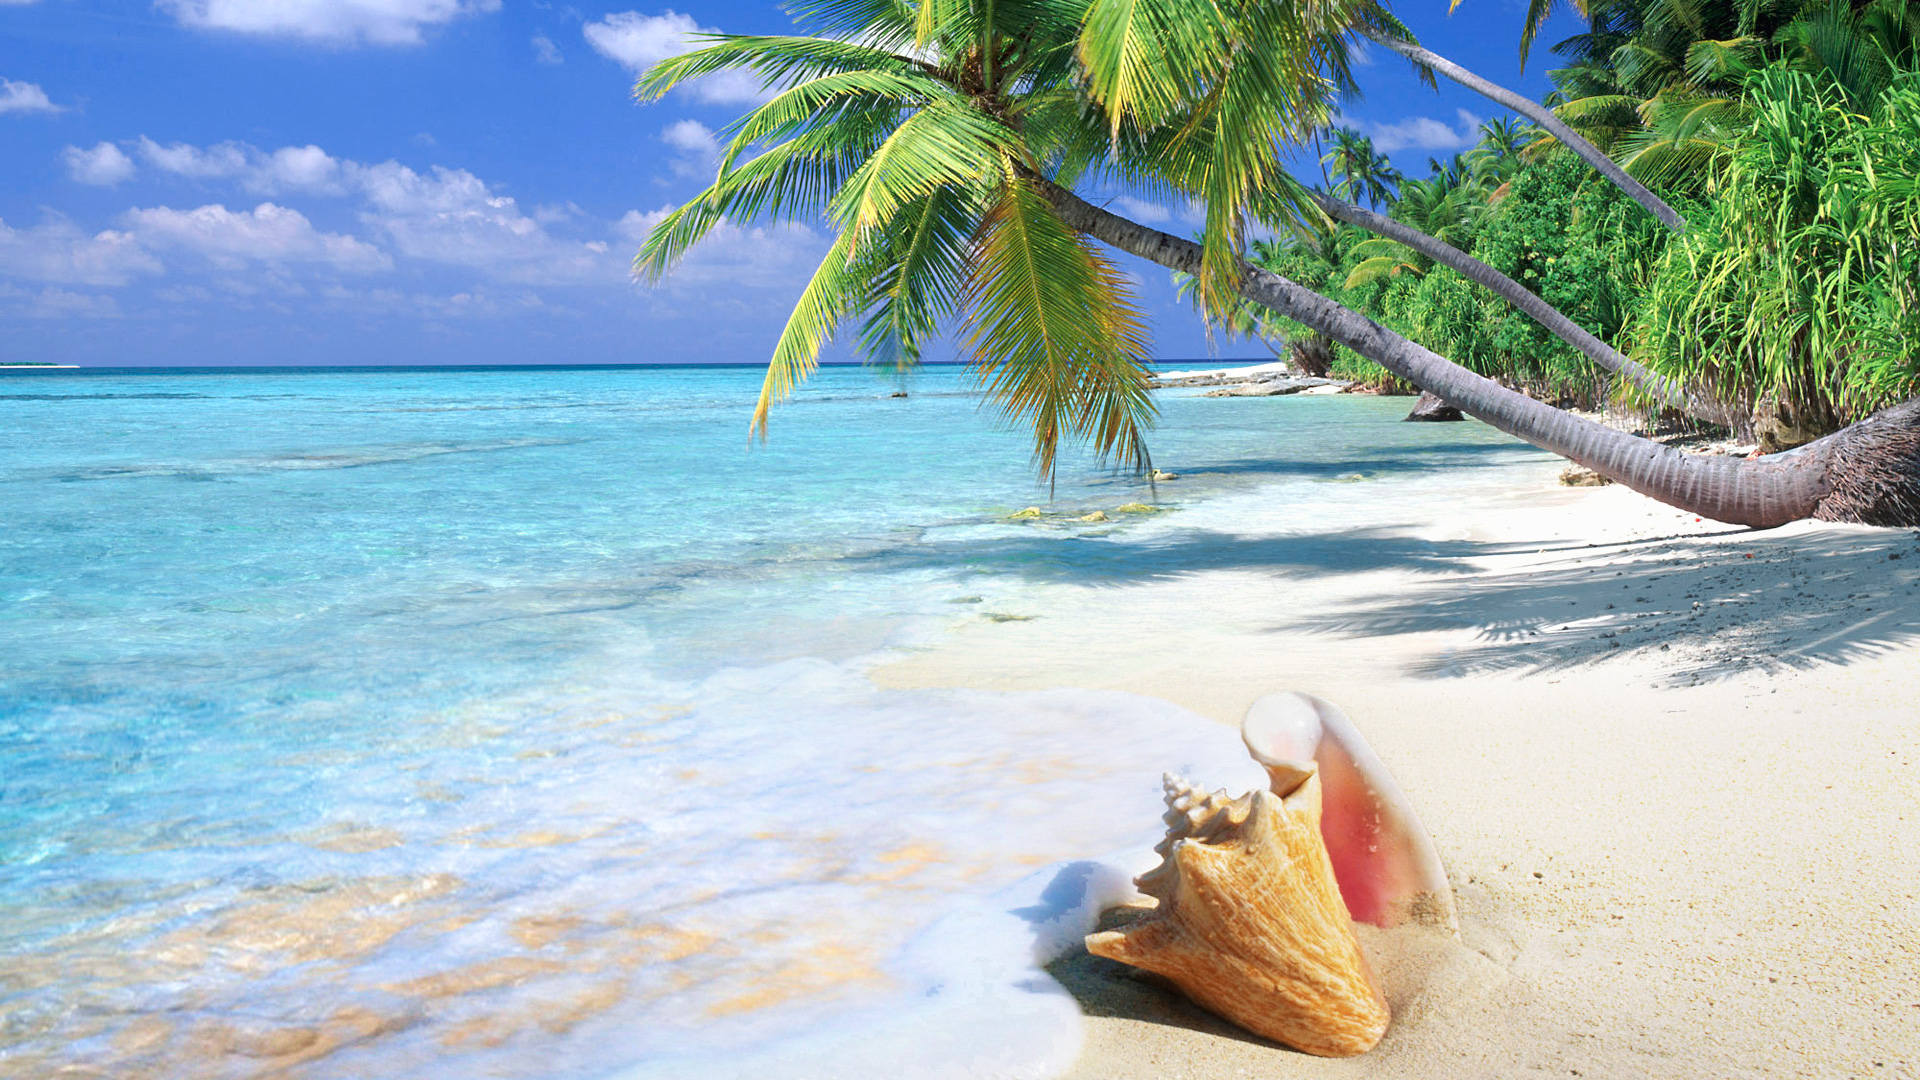 hd wallpaper tropical beach shell | wallpapers55.com - Best Wallpapers ...